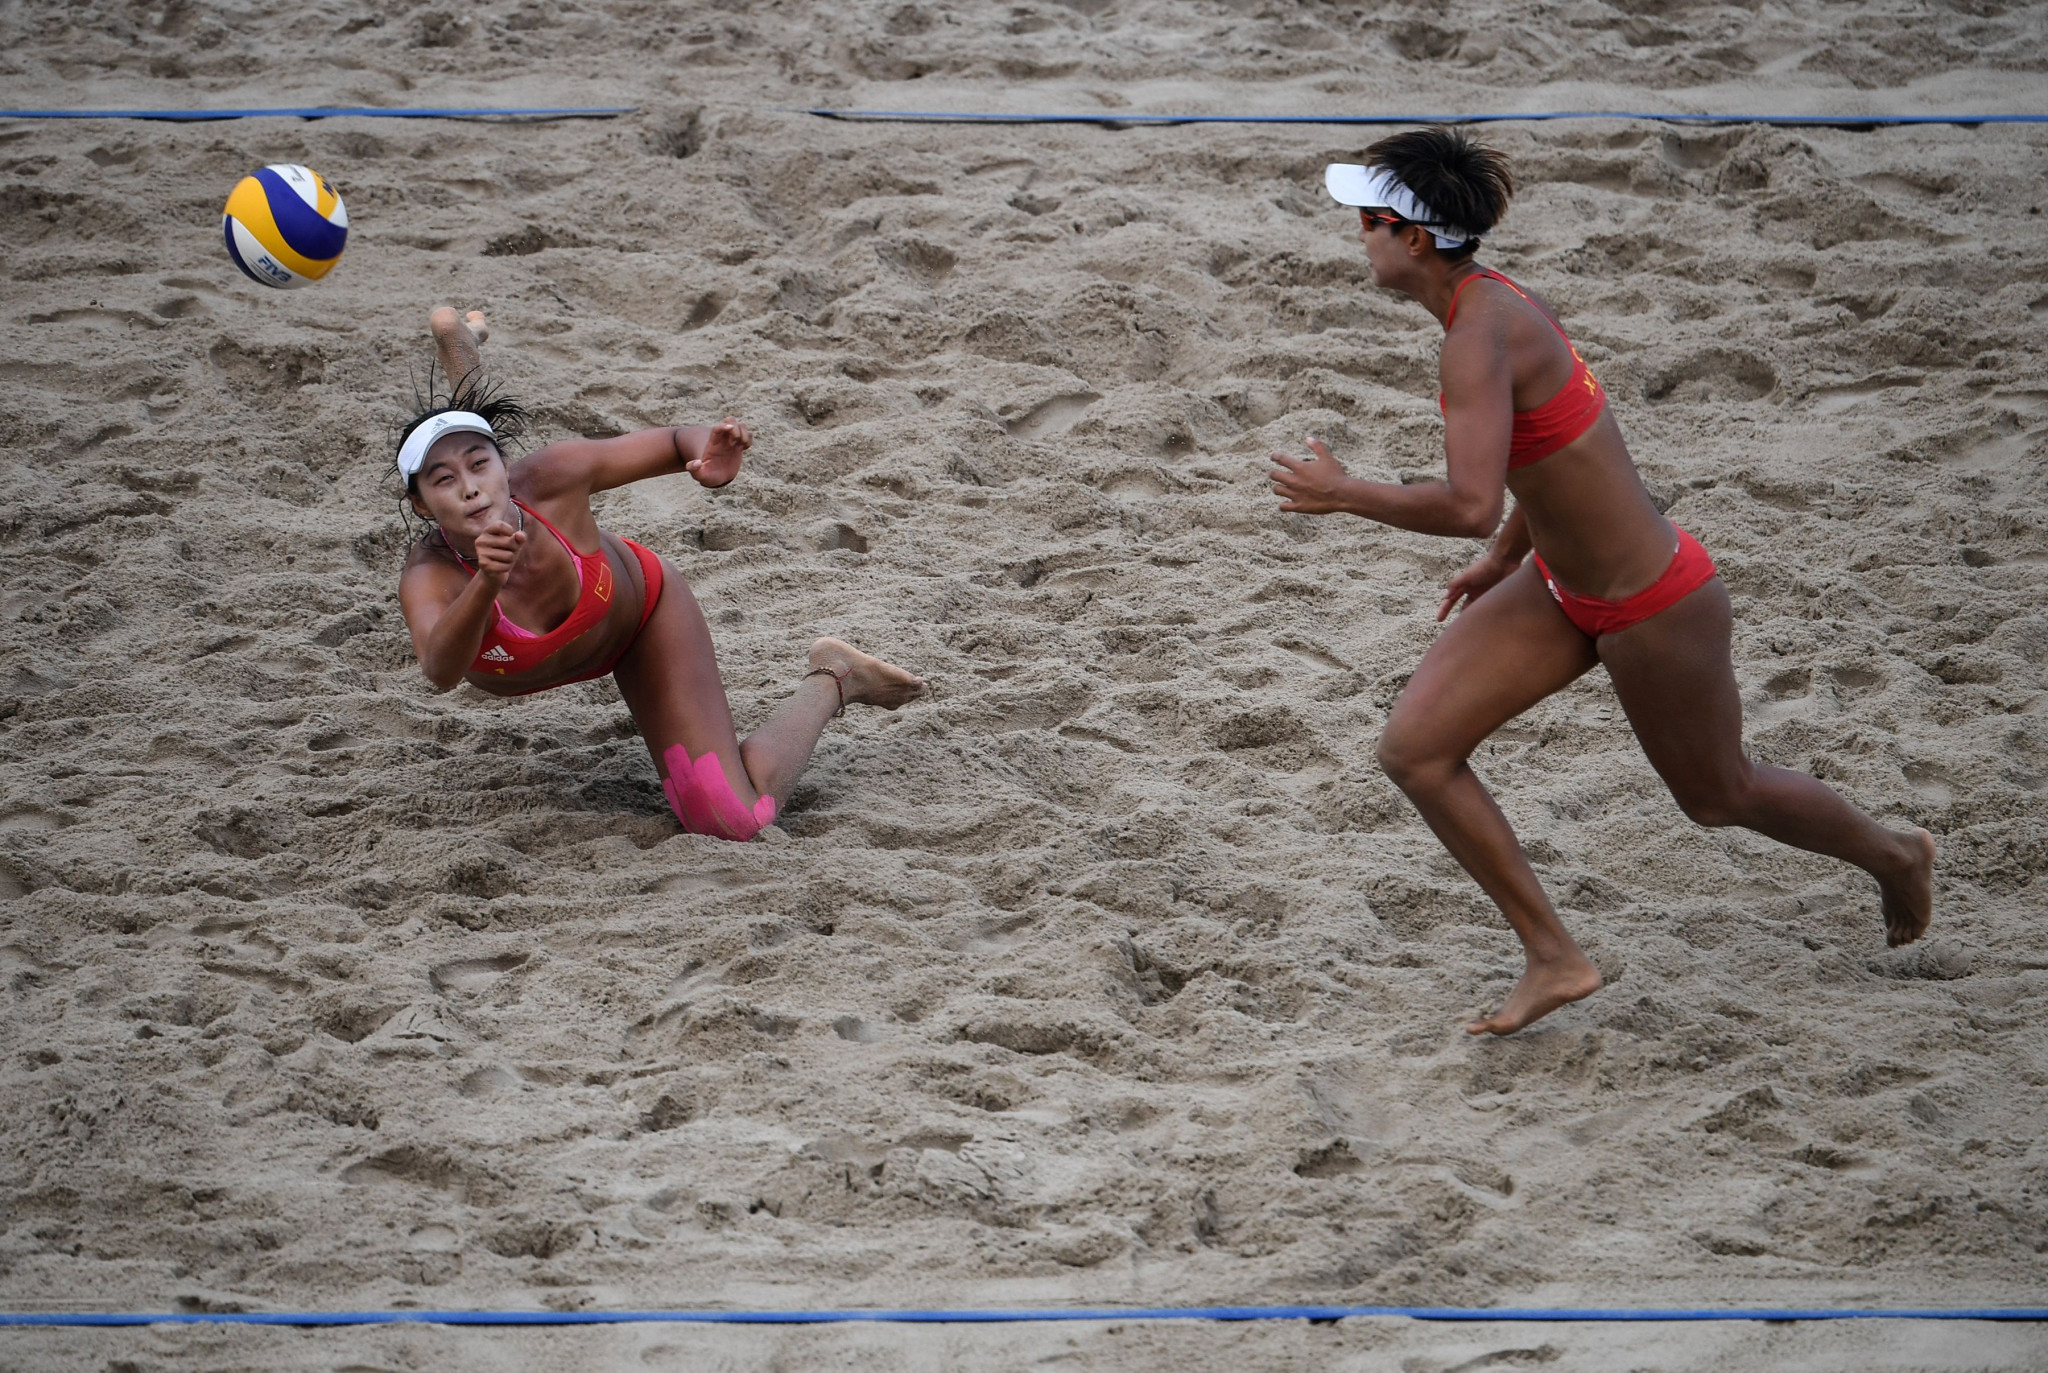 China's Fan Wang and Xinyi Xia won gold in the women's beach volleyball, beating Miki Ishii and Megumi Murakami from Japan ©Getty Images